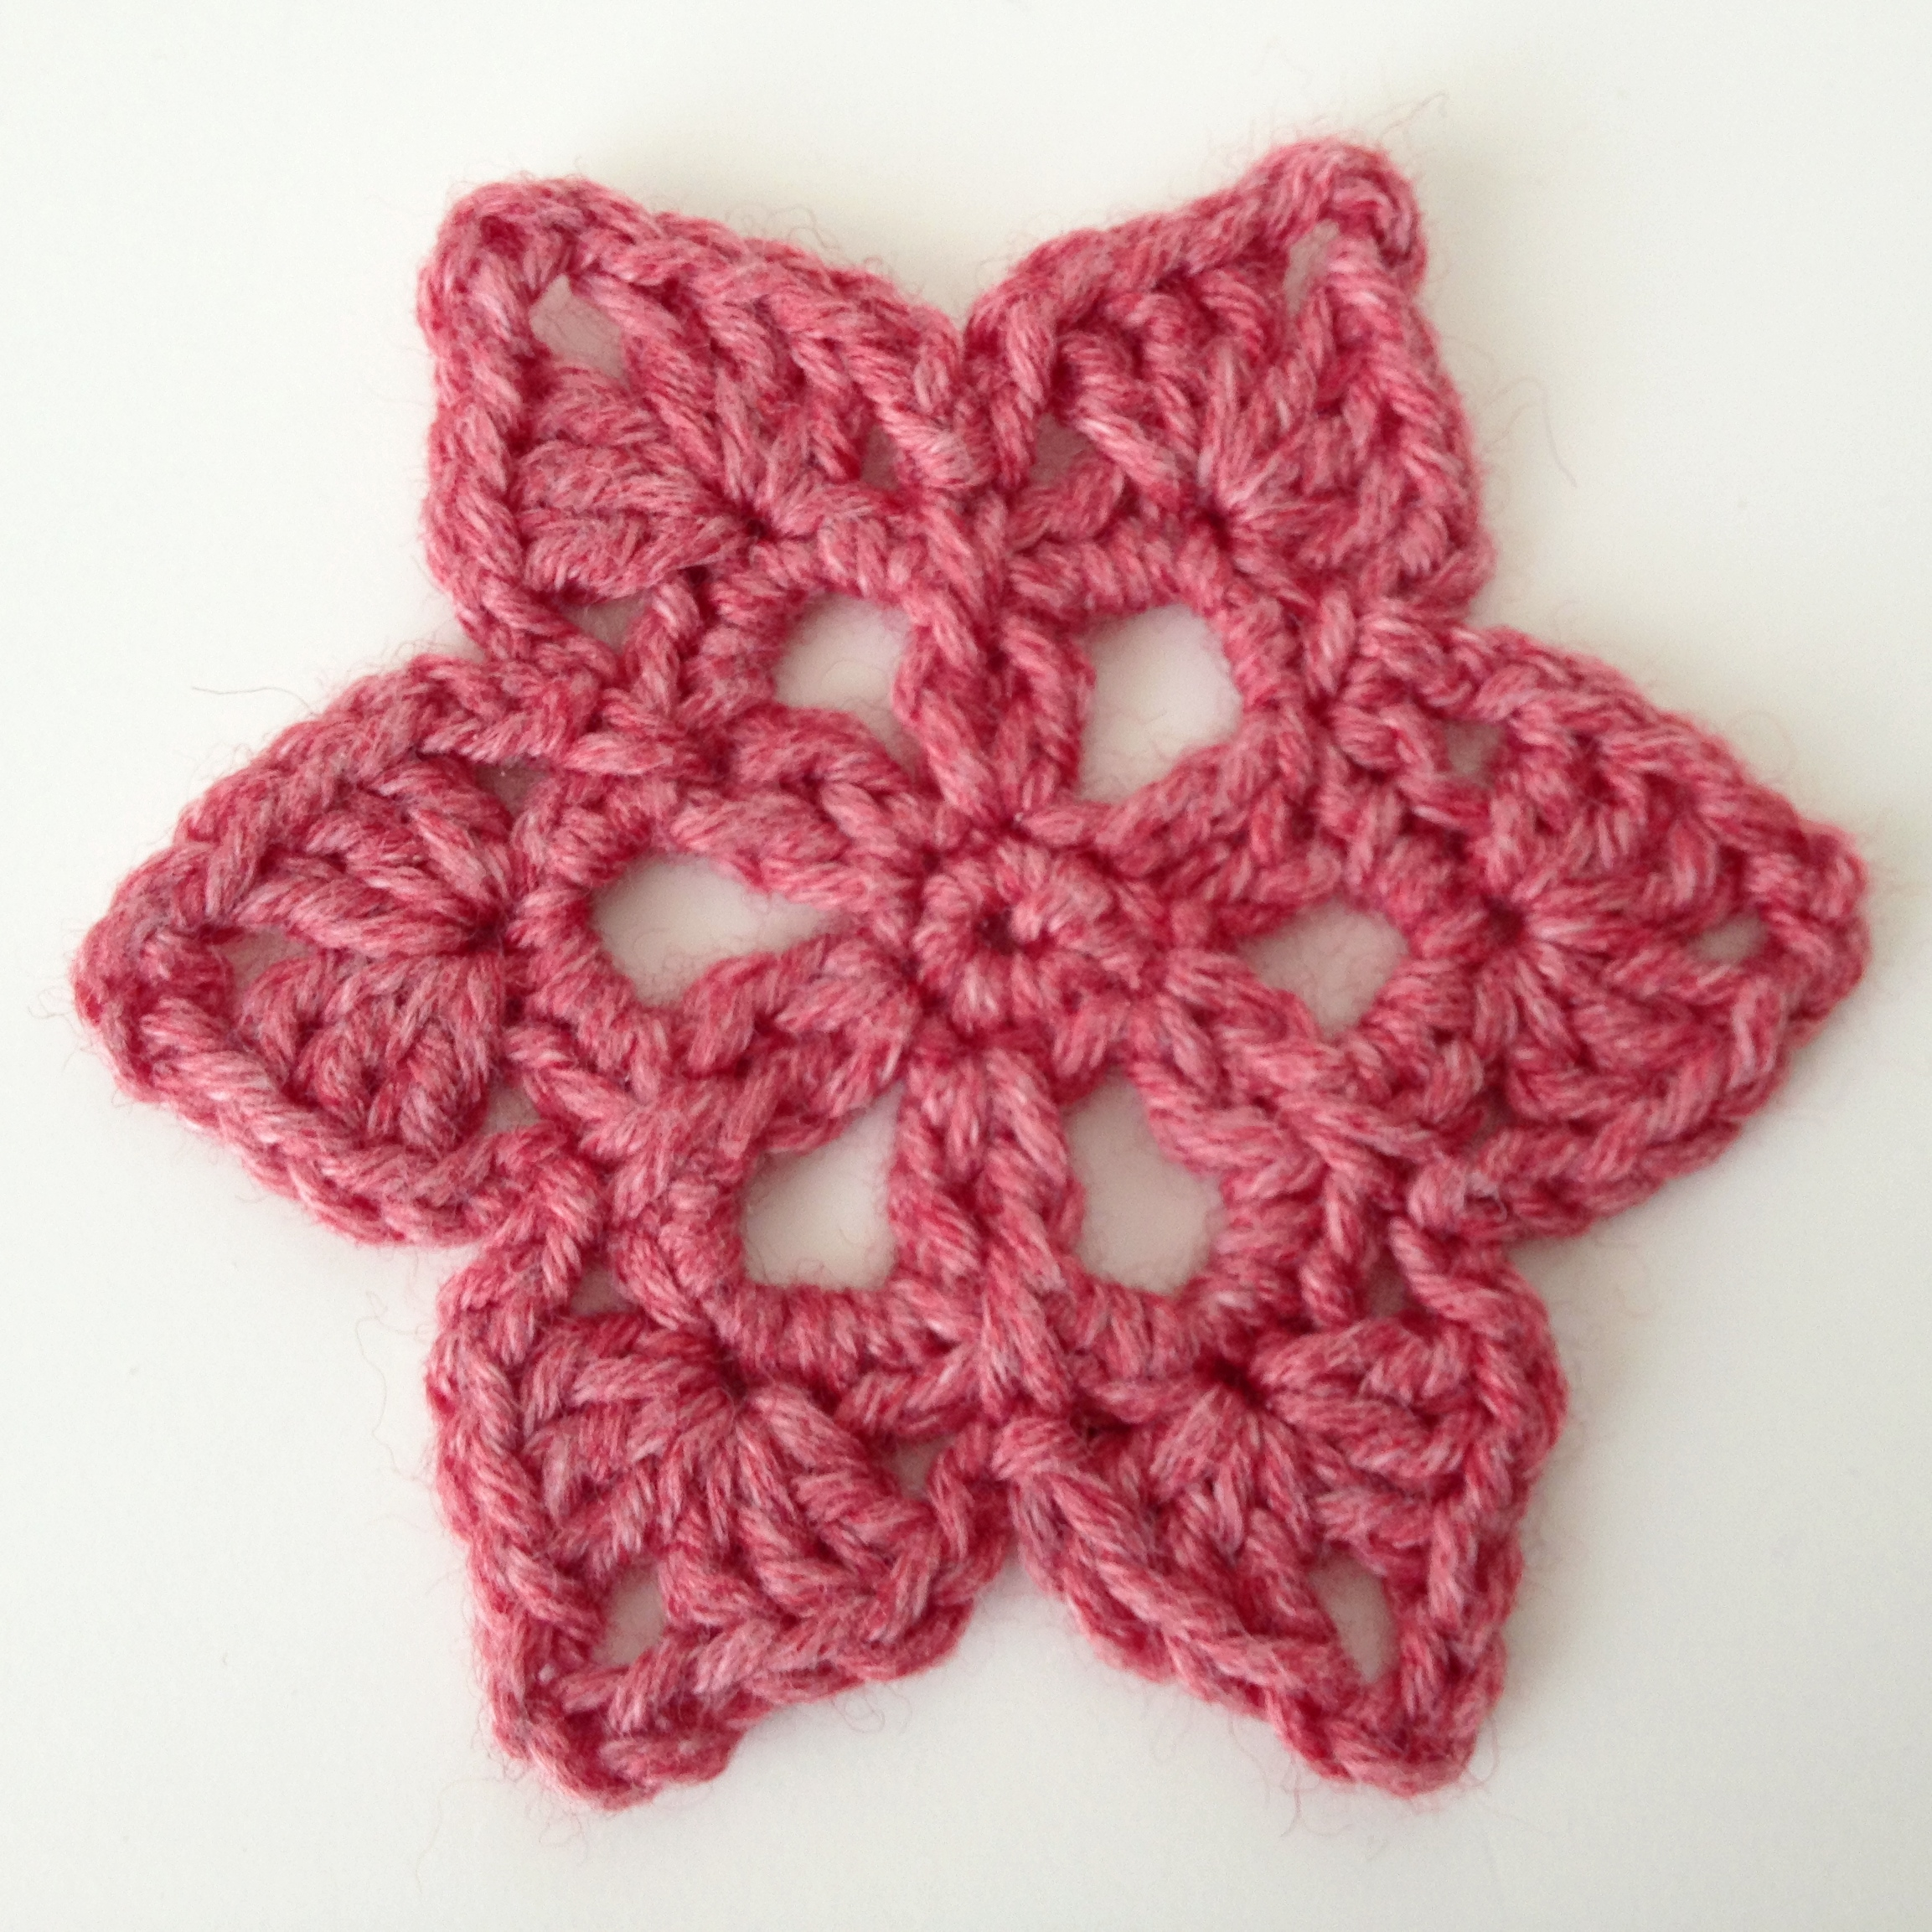 Crochet Patterns For Motifs : Star Crochet Motif Deux Brins de Maille